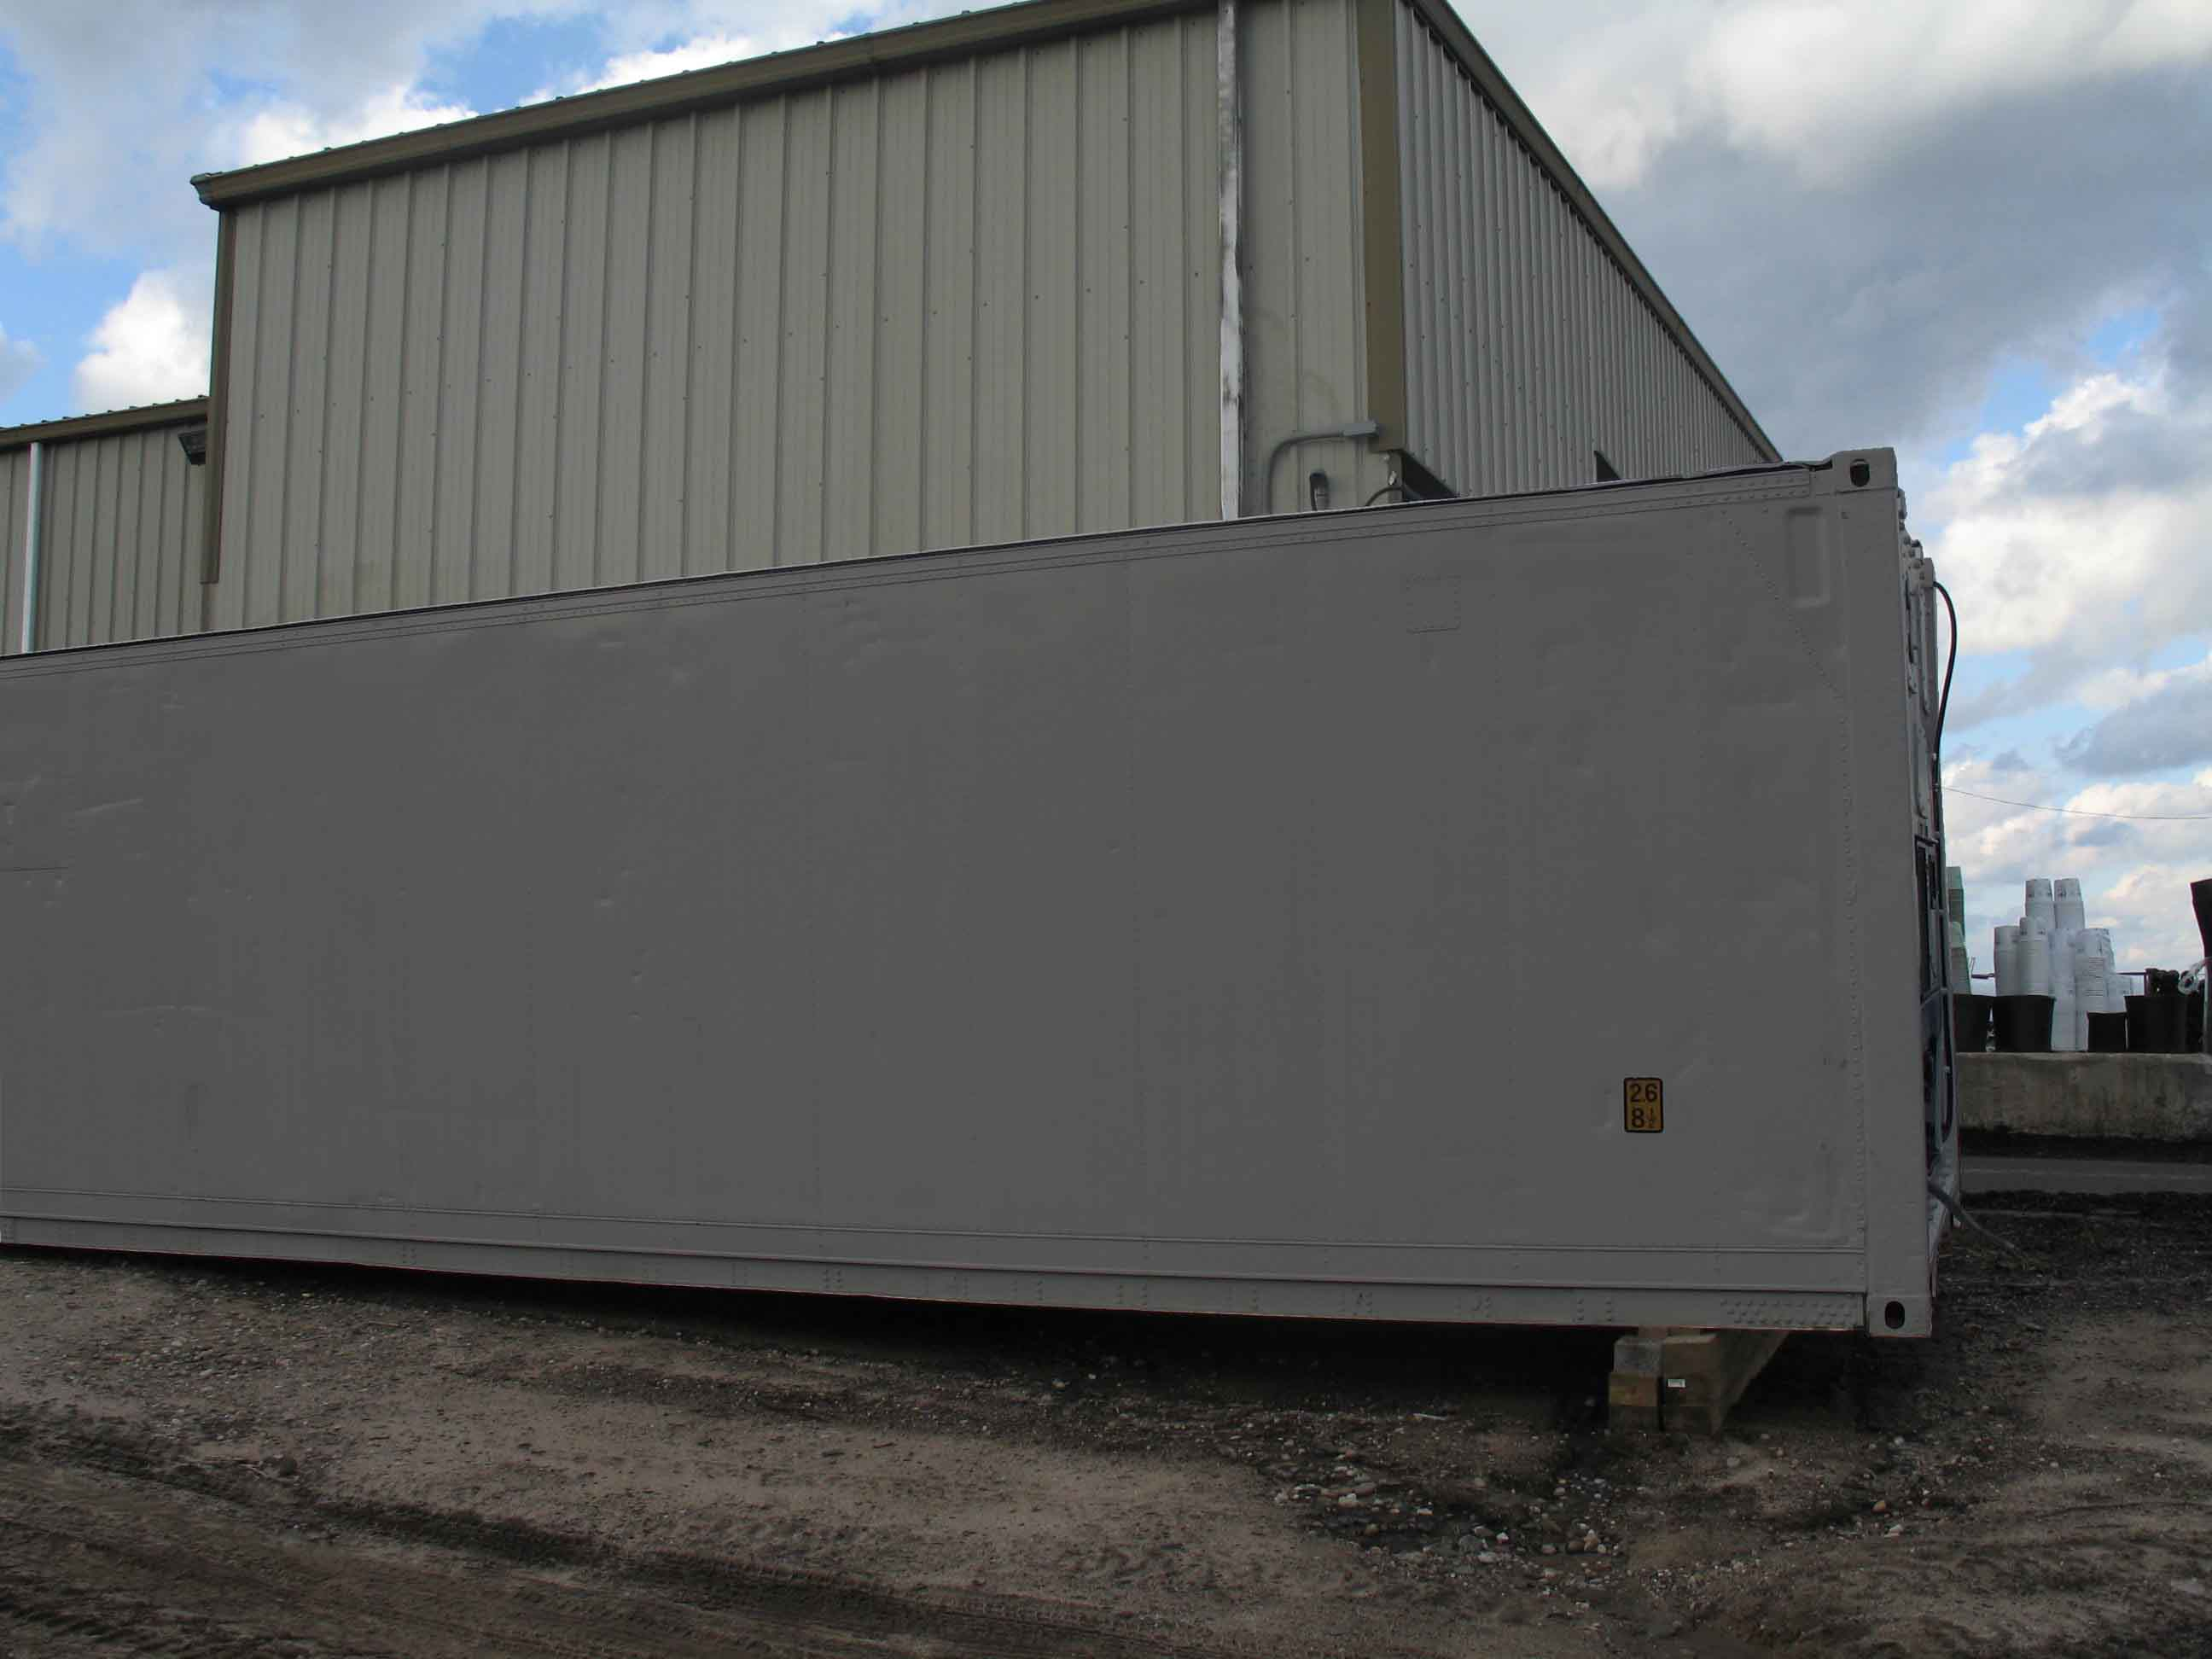 container_side_02